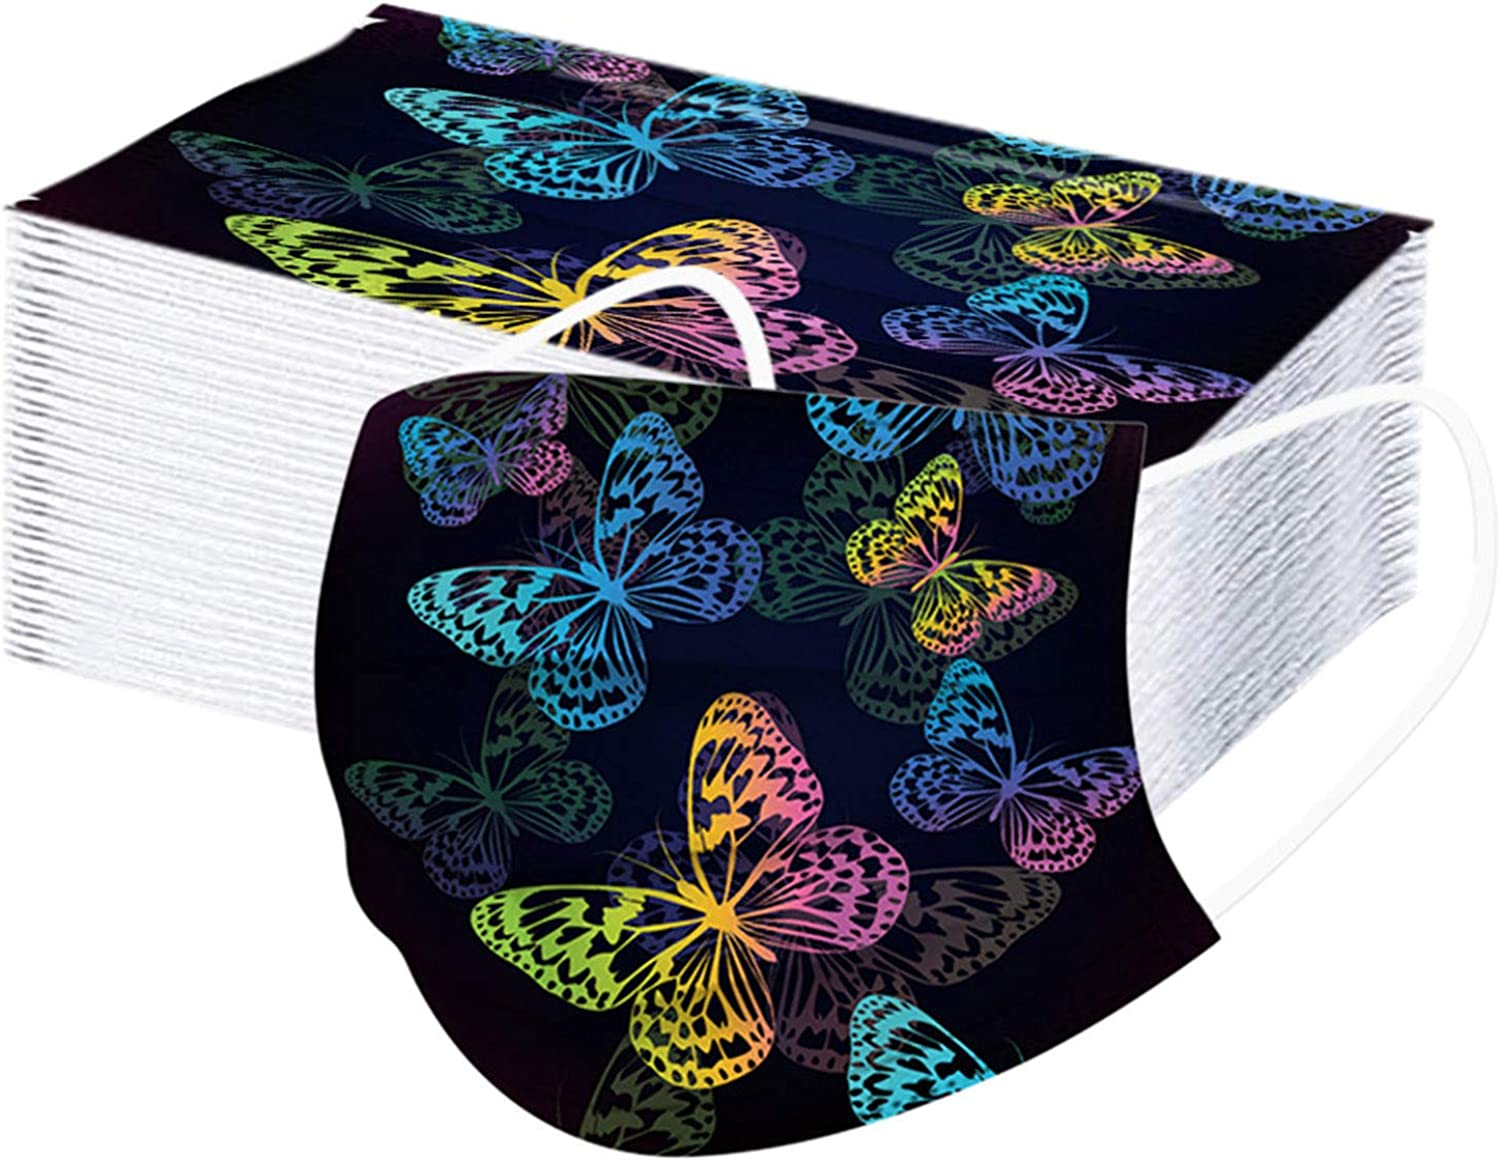 Popular Factory outlet SUGUJU Butterfly Printed 3-Layer 50PCS M Outdoor Dust-Proof Face